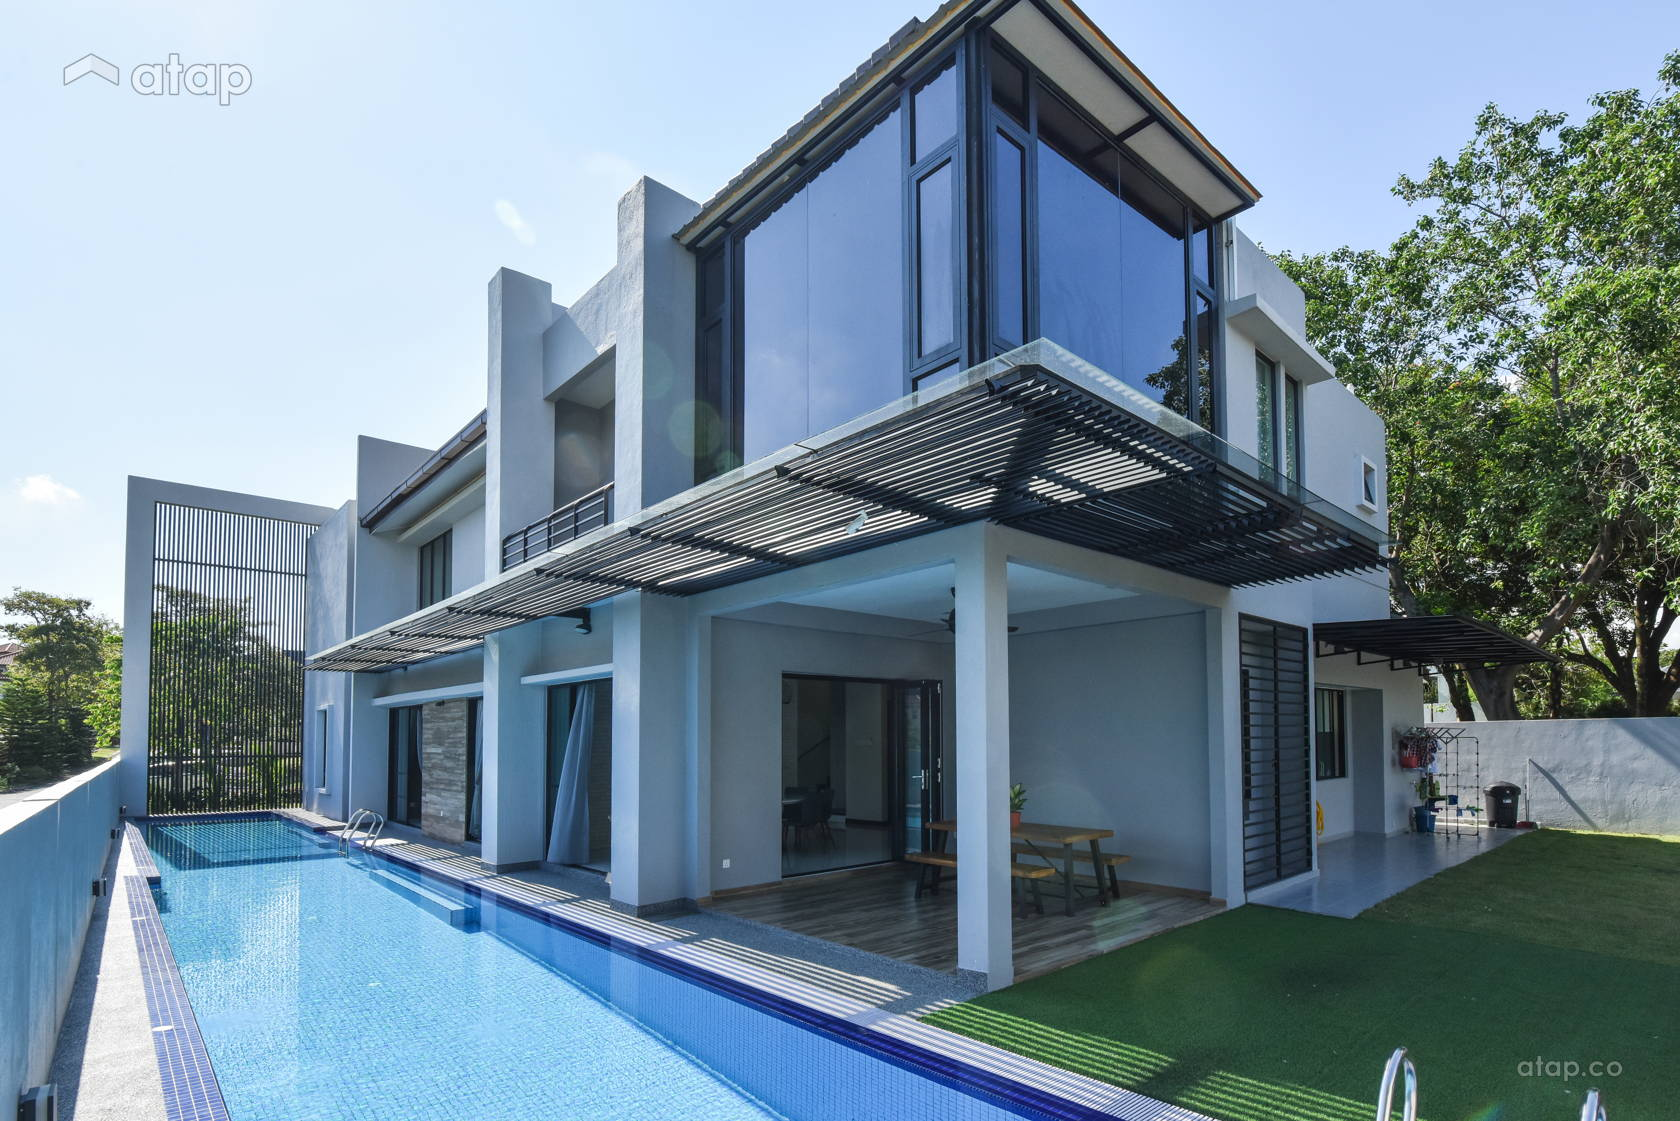 Narrow lap pool for amodern contemporary bungalowlocated in Shah Alam.